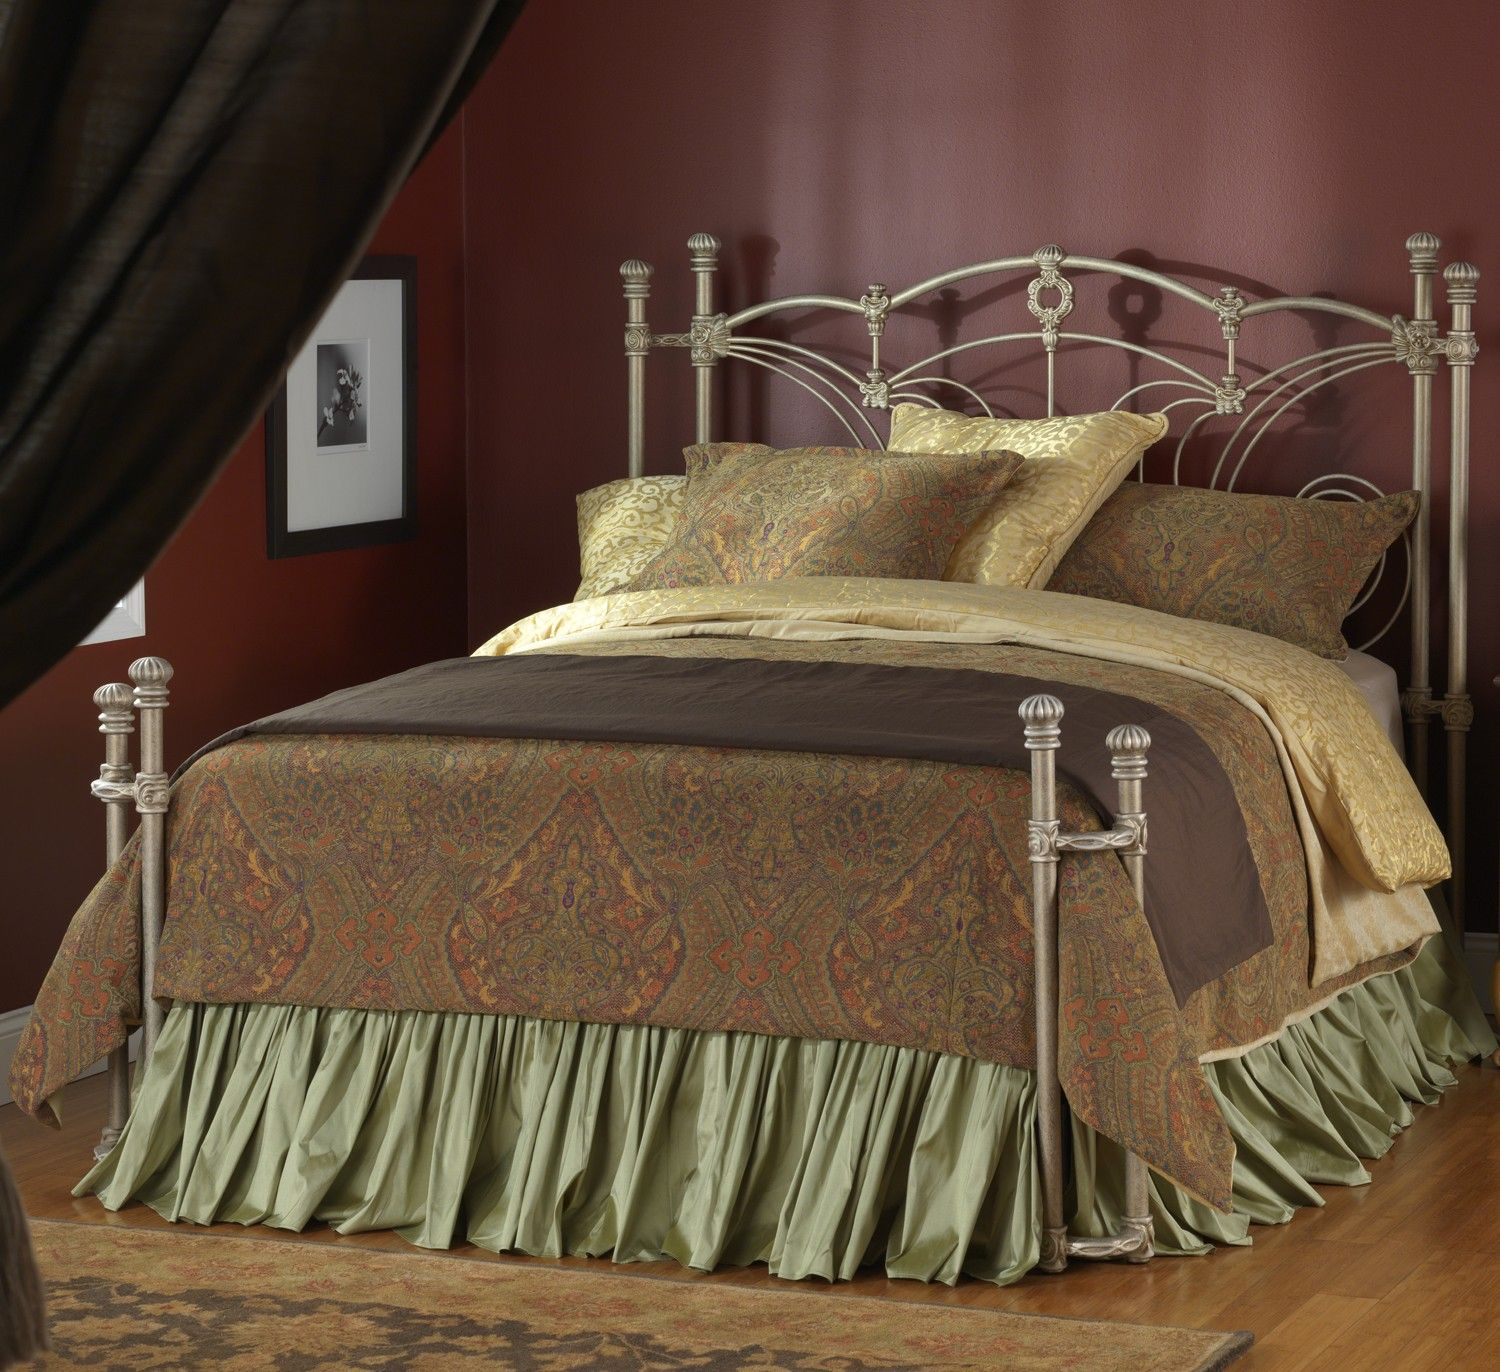 beds antique set headboard king wesley of with allen metal reviews wrought fine frame twin iron medium clearance size bed